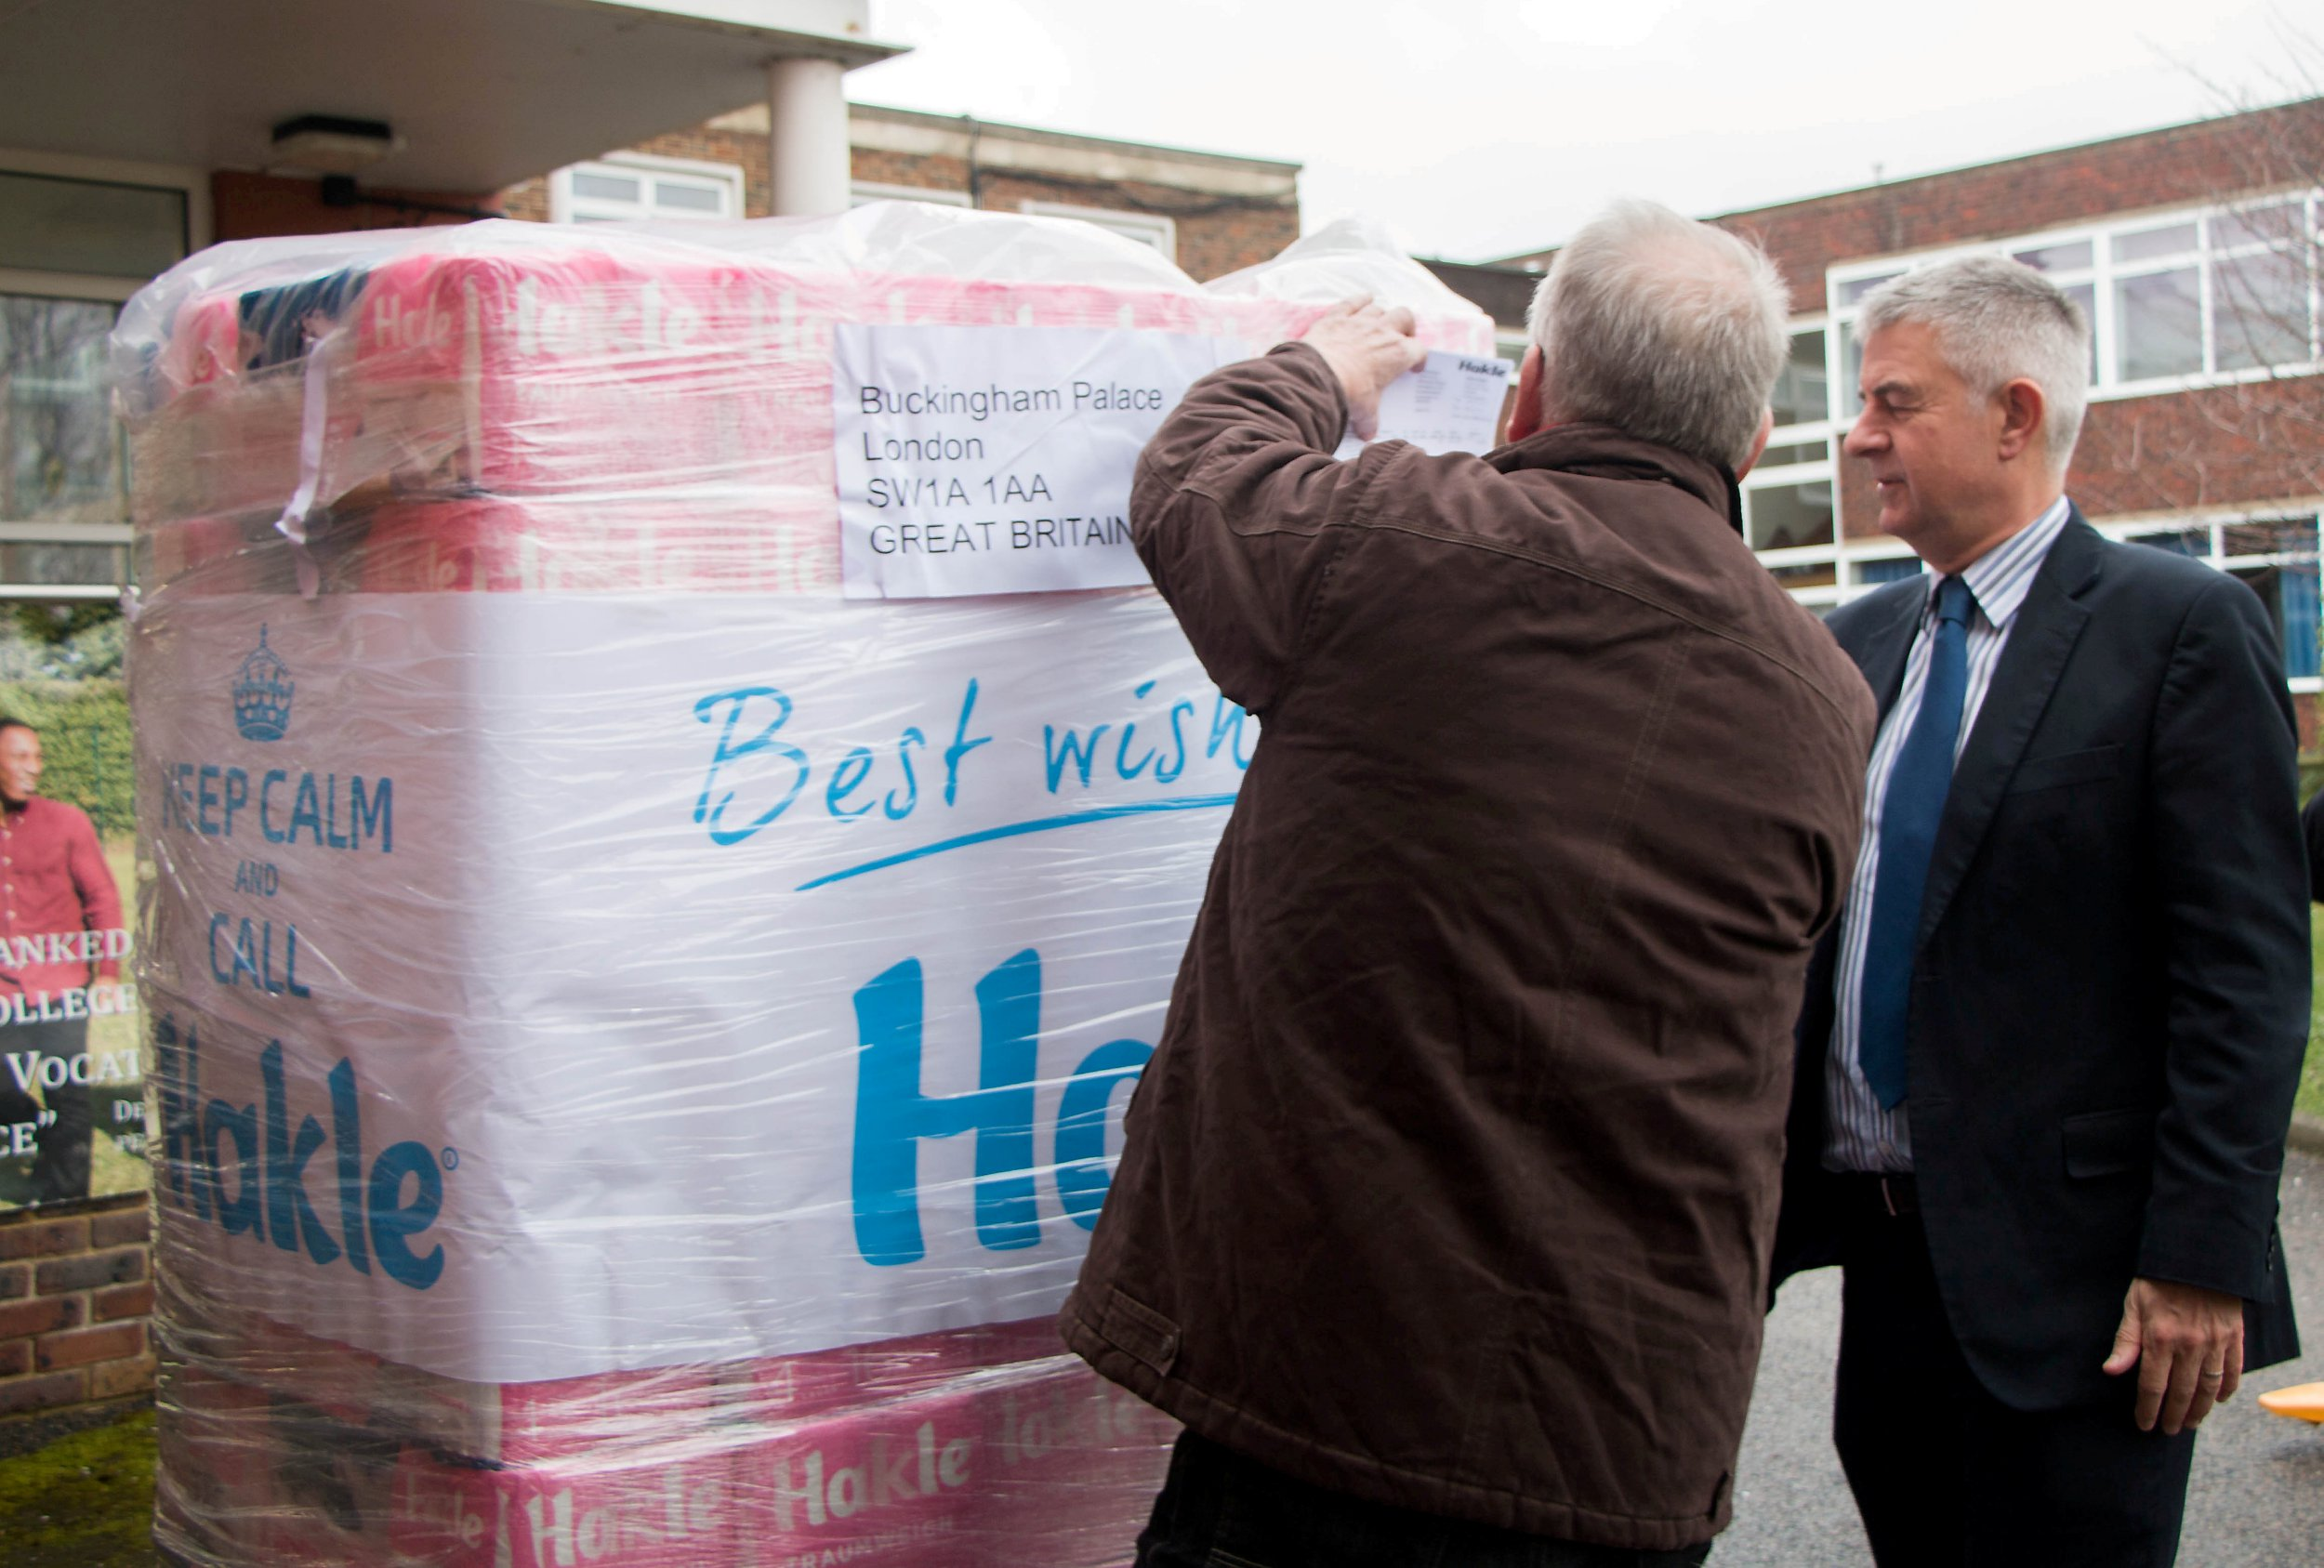 """A thousand premium toilet rolls are donated to a secondary school - after they were rejected by the queen. See National News story NNrolls; German company Hakle sent 90 packs of bog roll to Buckingham Palace to ensure the monarch has access to one of life's necessities in case of a 'no deal' Brexit shortage. After the palette was turned away by security due to safety fears, a staff member of the Dusseldorf based company suggested they should gift to Woodcote High School, based in Coulsdon, south London, where her brother Peter Mack works as Deputy Head. Peter said: """"It's been a slightly confusing series of events, but in the end we've ended up with a helpful stock of high quality loo roll."""